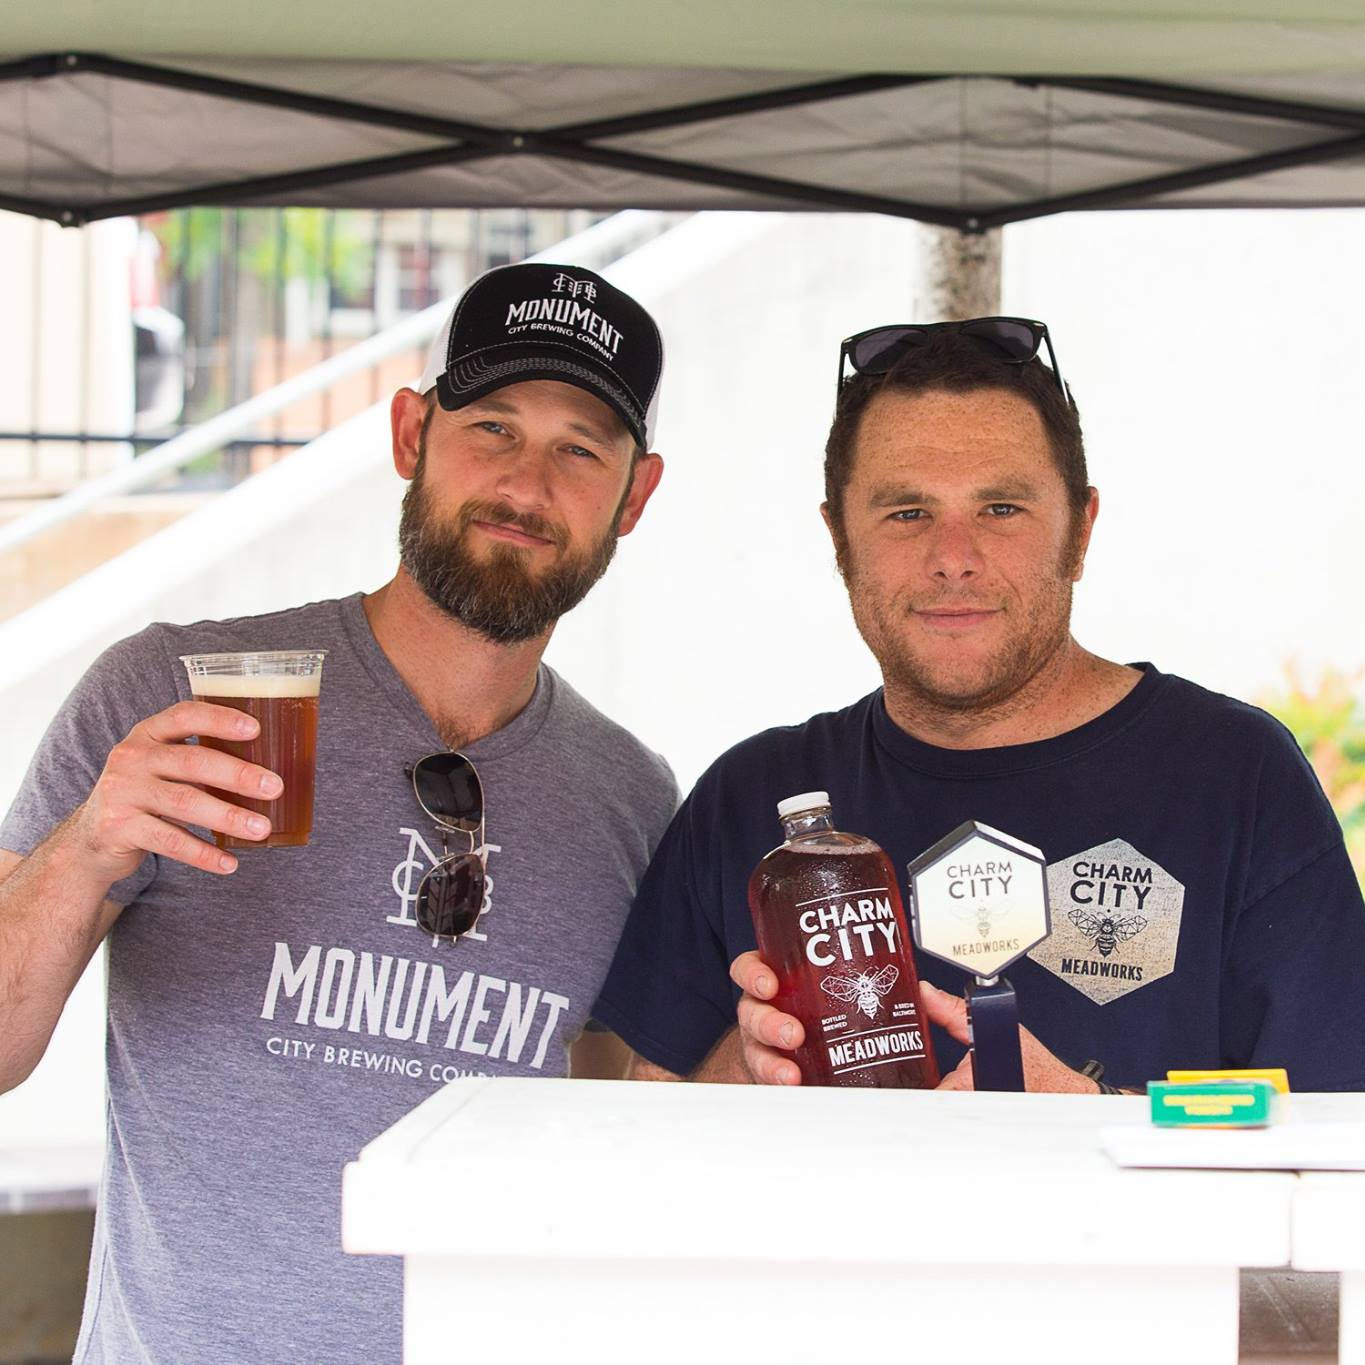 Co Owners of Monument City Brewing and Charm City Meadworks hanging out